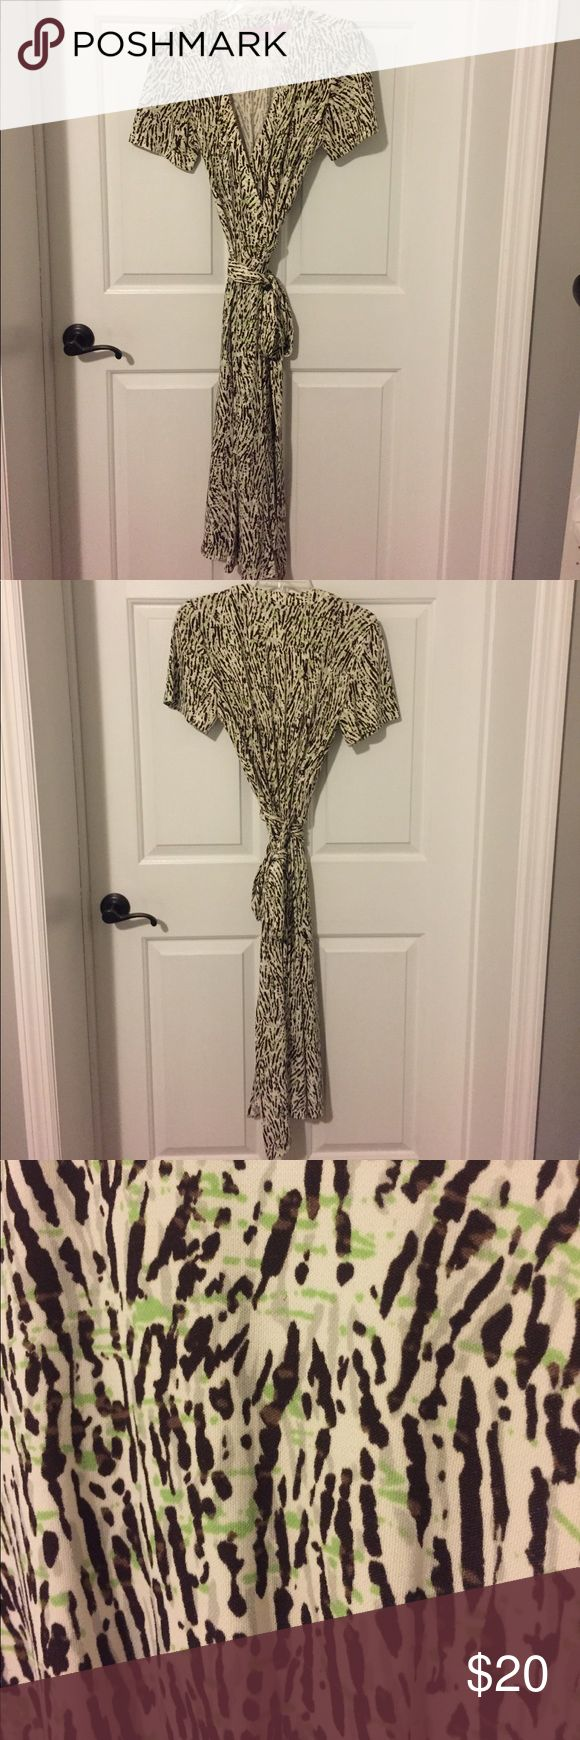 Dana Buchman M wrap dress white brown animal print Dana Buchman M true wrap dress, white with brown, beige and a bit of lime green animal-inspired print. Short sleeves and below-knee length. Great condition. High-quality knit made of 96% polyester, 4% spandex. Dana Buchman Dresses Midi